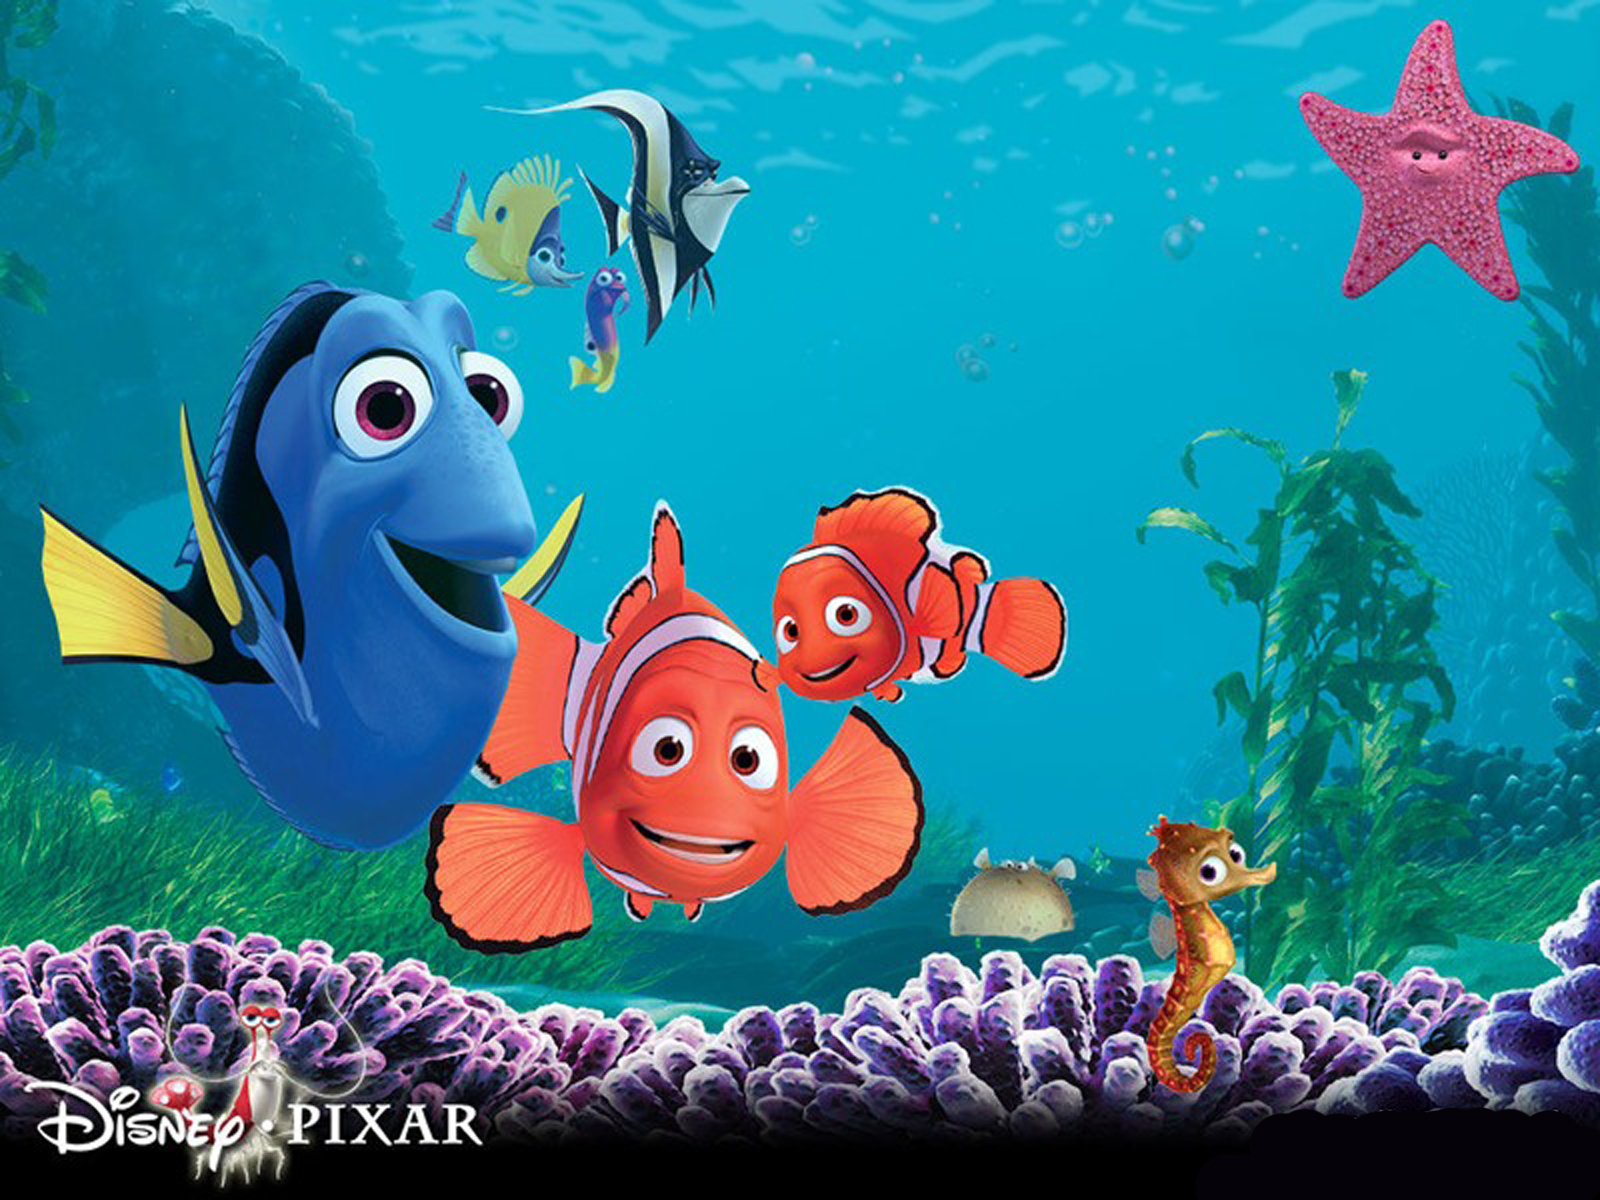 Finding Nemo 3D Movie Poster HD Wallpapers Cartoon Wallpapers 1600x1200